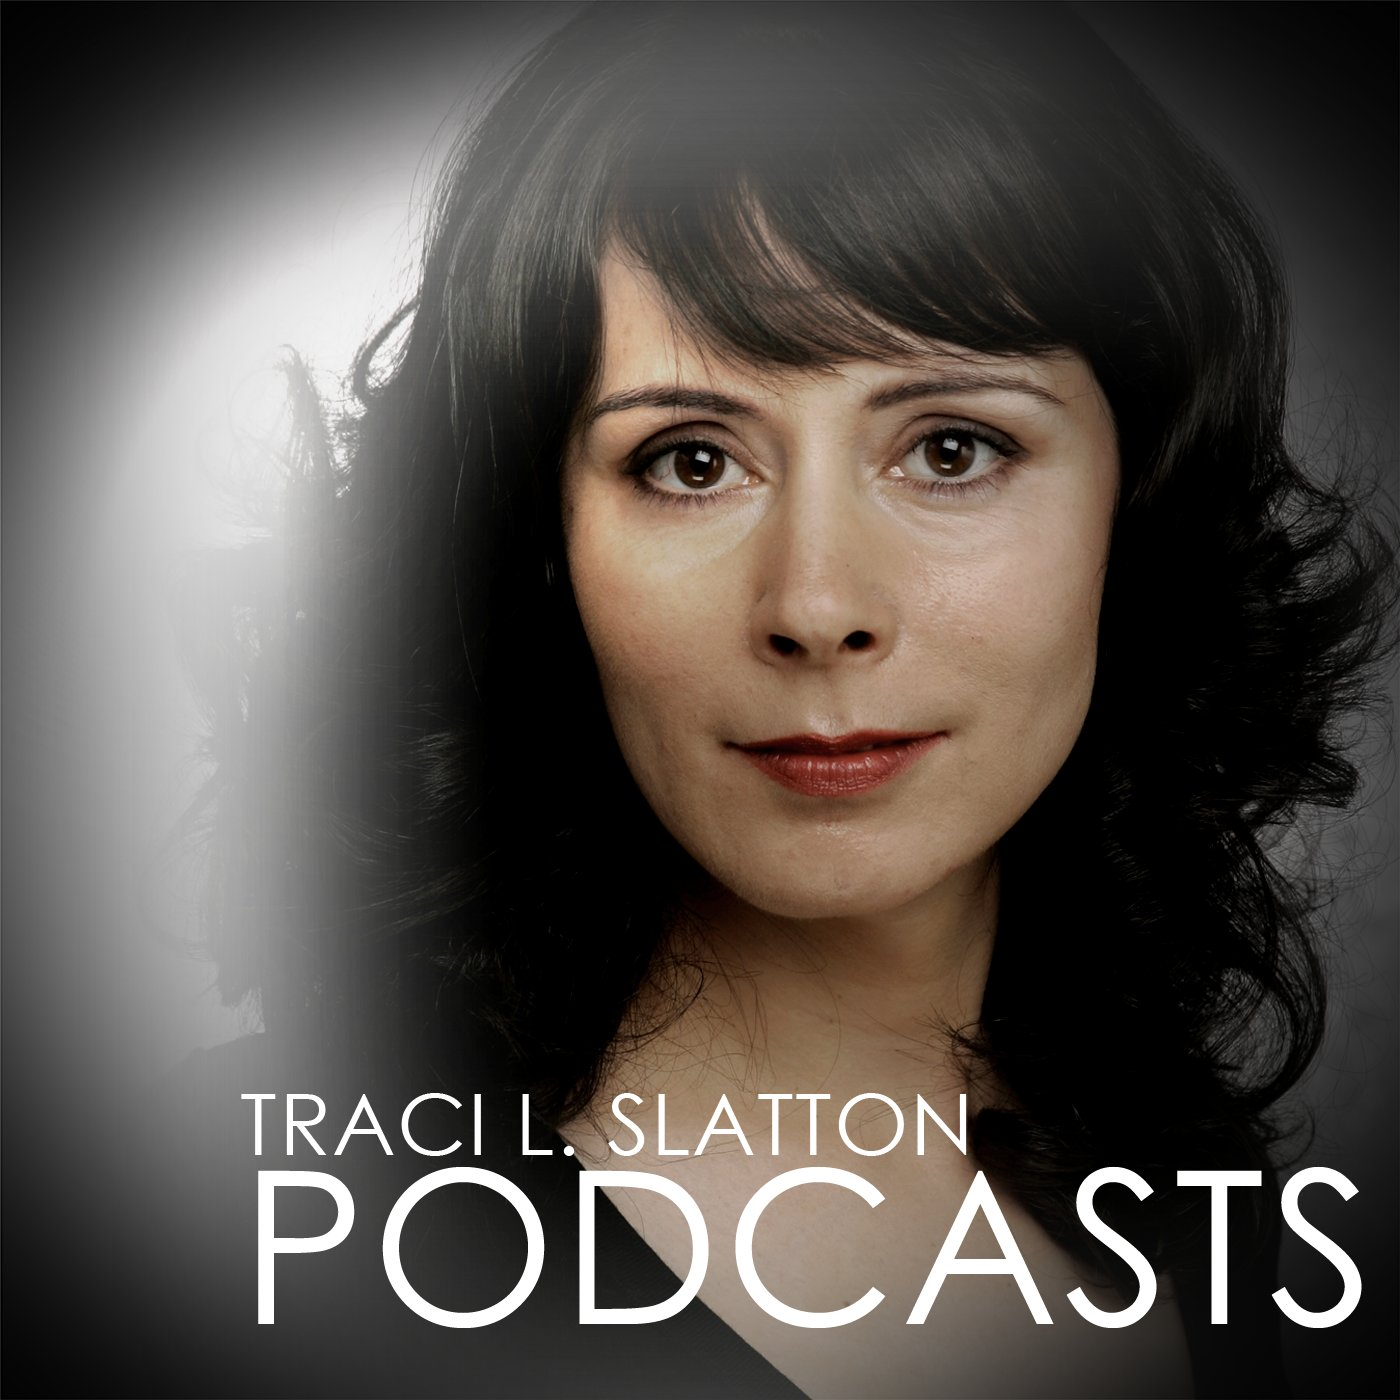 Traci L. Slatton Podcasts